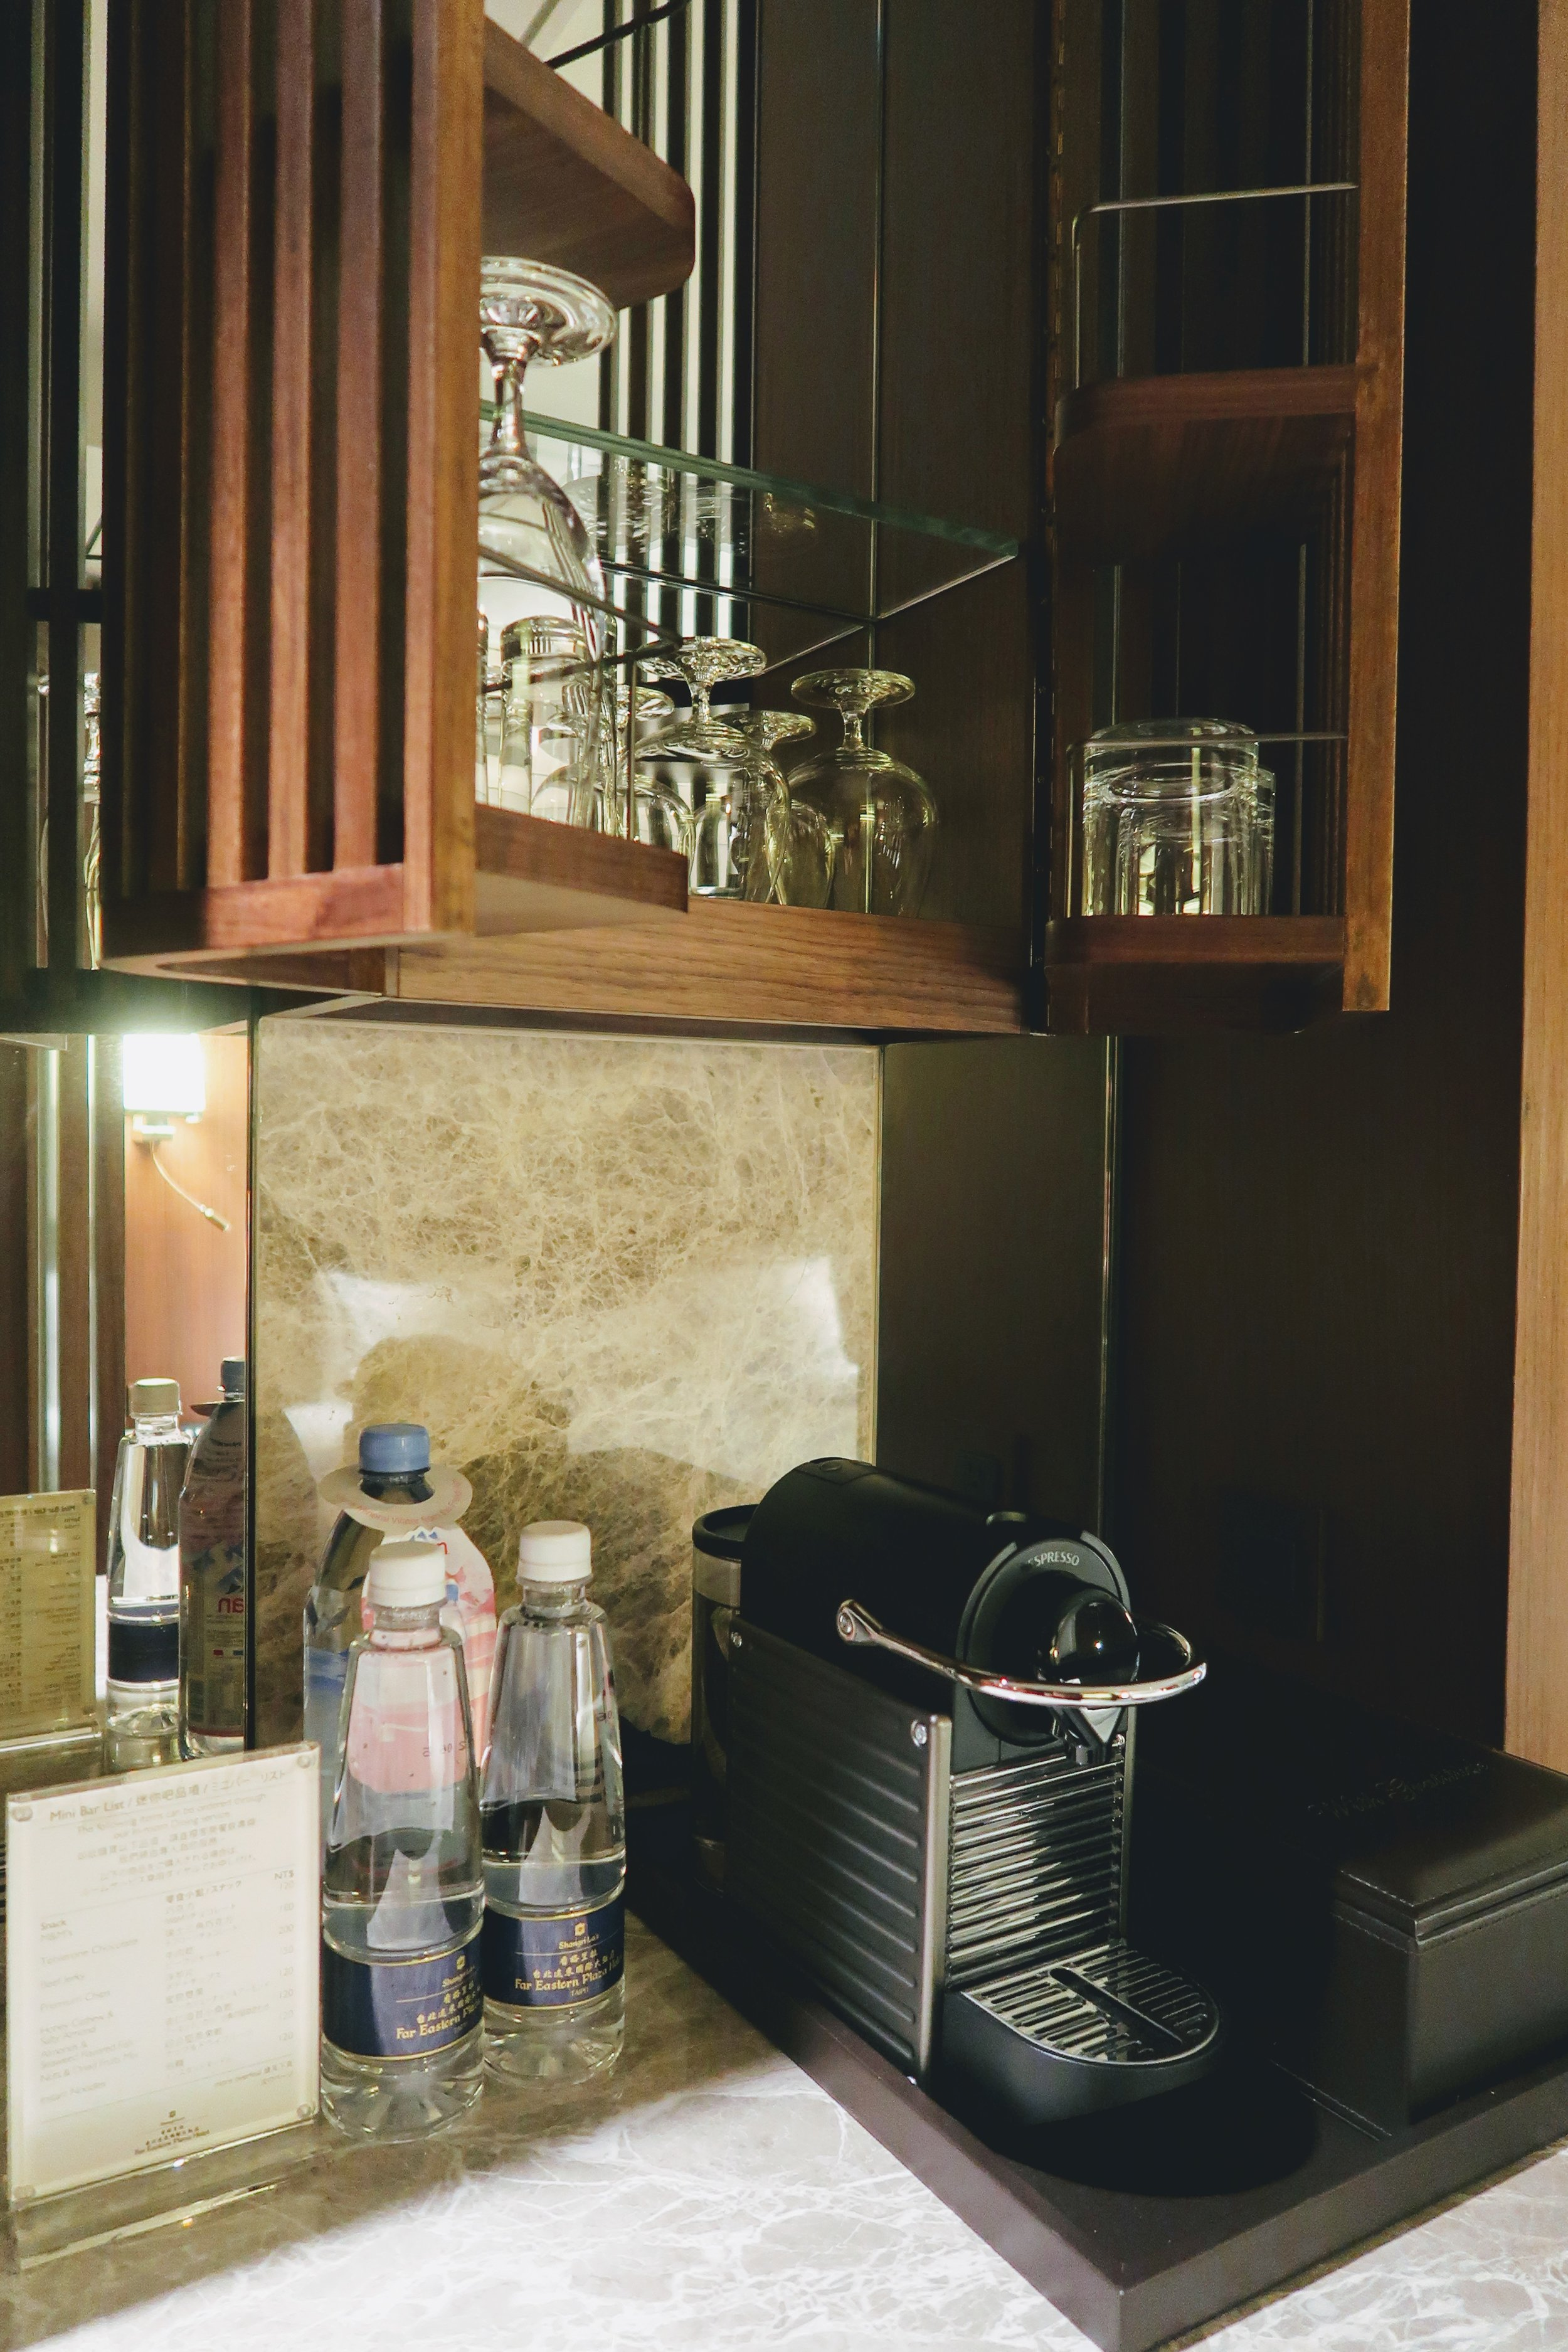 Nespresso coffee machine, free bottles of water and an impressive top cabinet containing the glasswares.